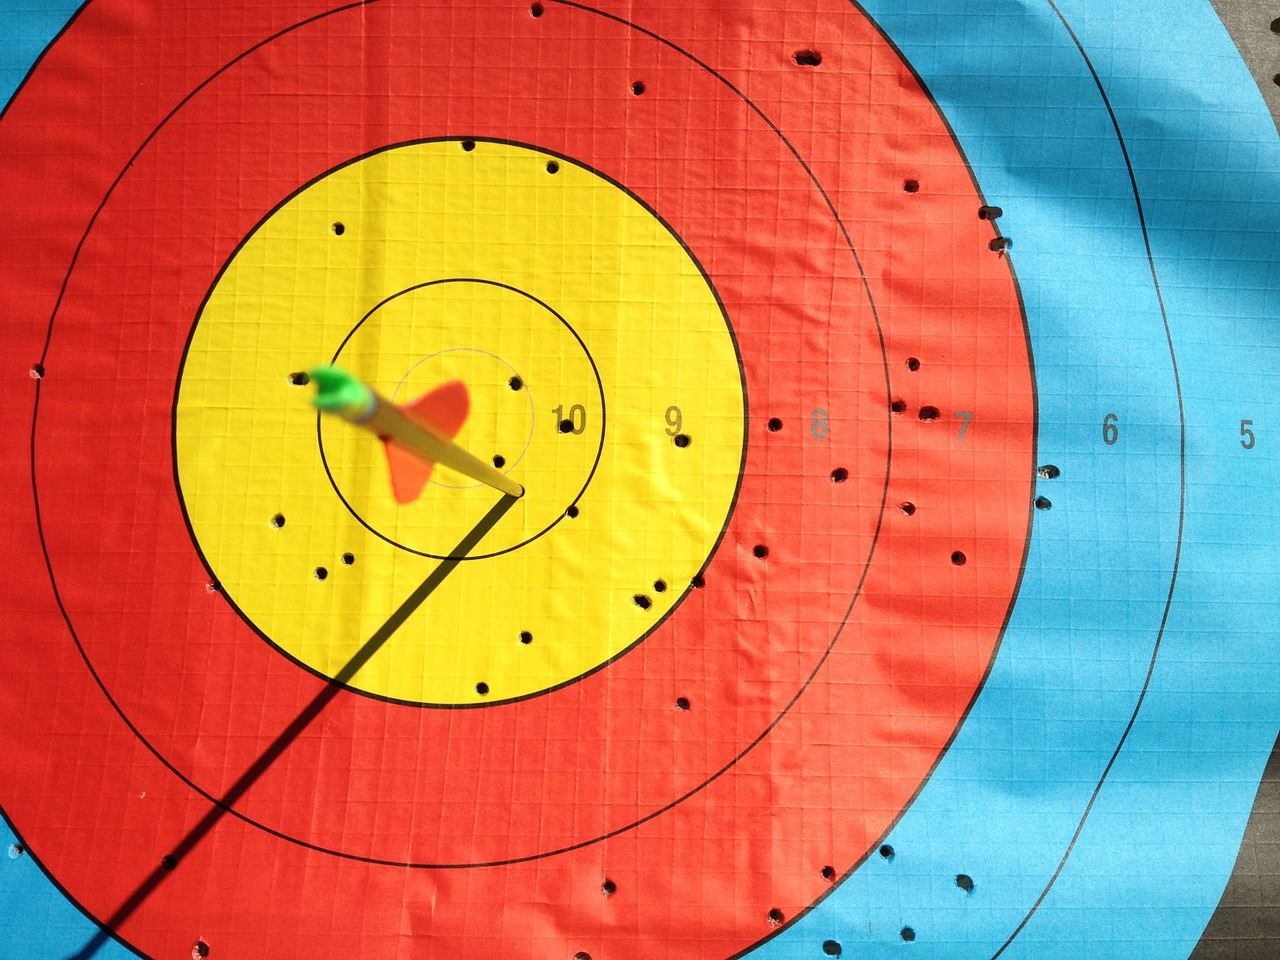 Target Practice Is A Good Way To Measure Portfolio Accuracy